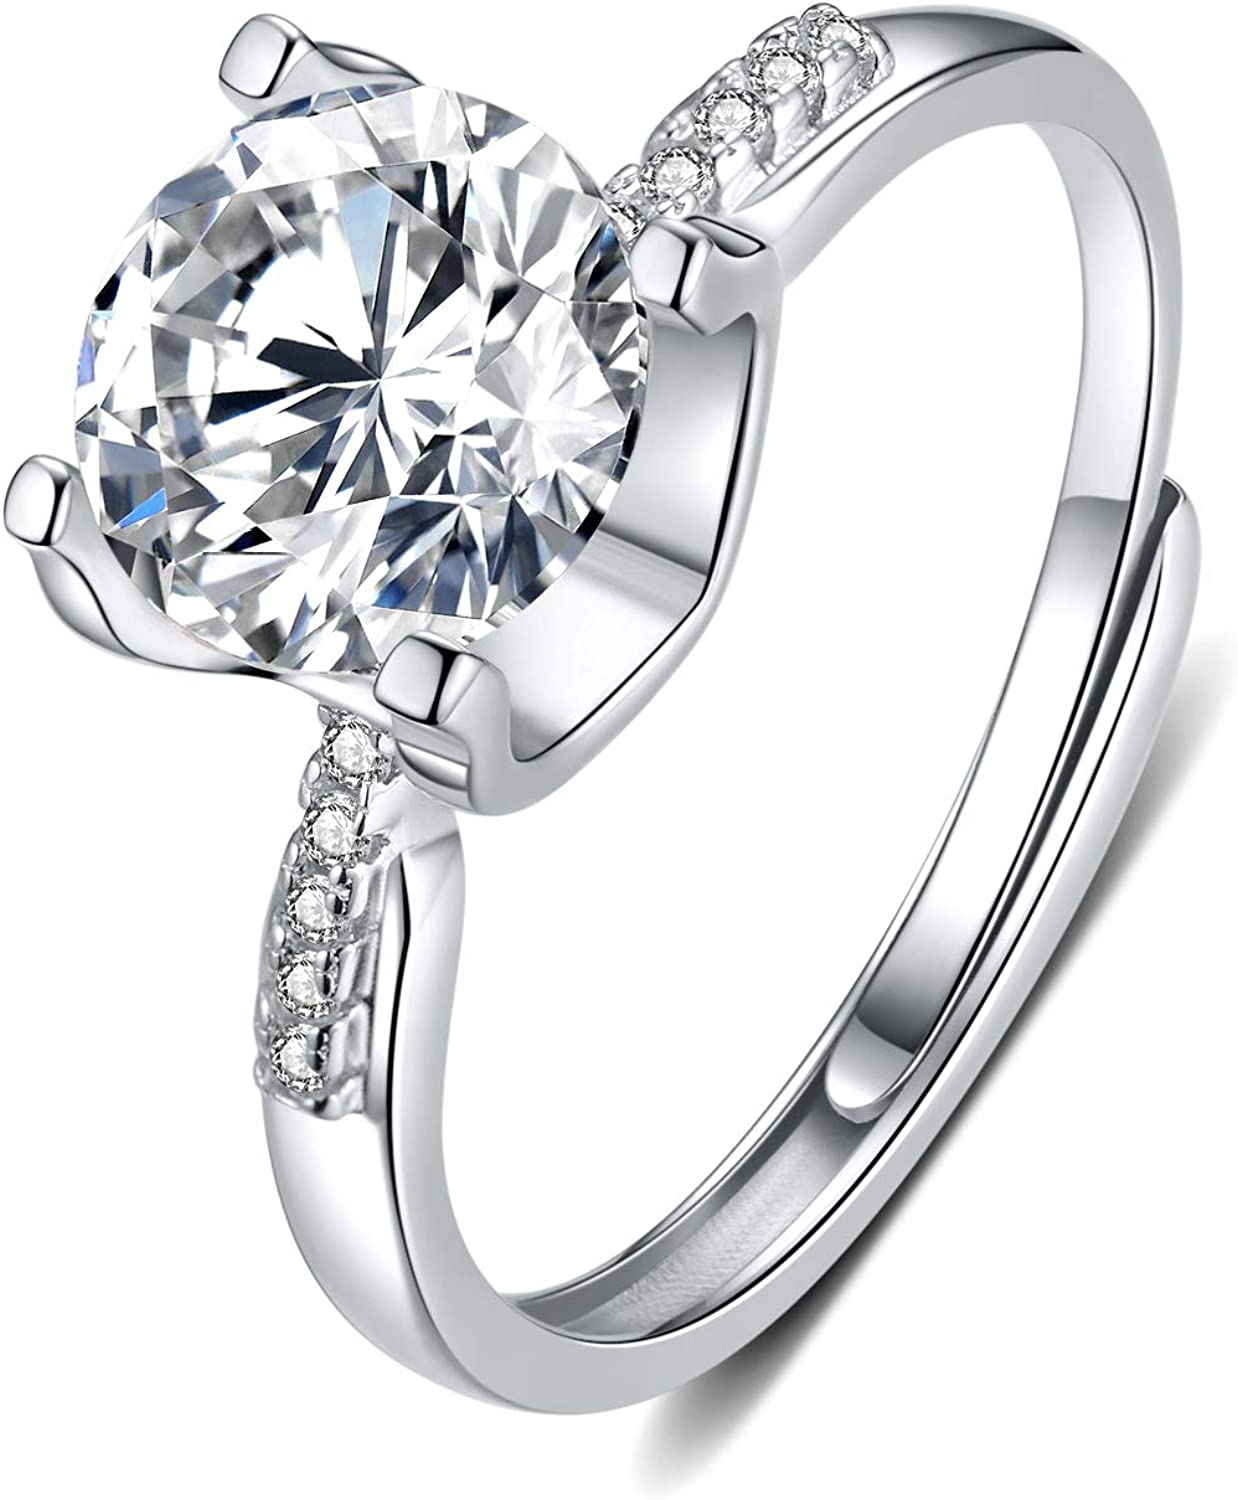 Moissanite Fresno Mall Our shop OFFers the best service Engagement Ring 2CT Center Gold Pla 4-Prong White 18K